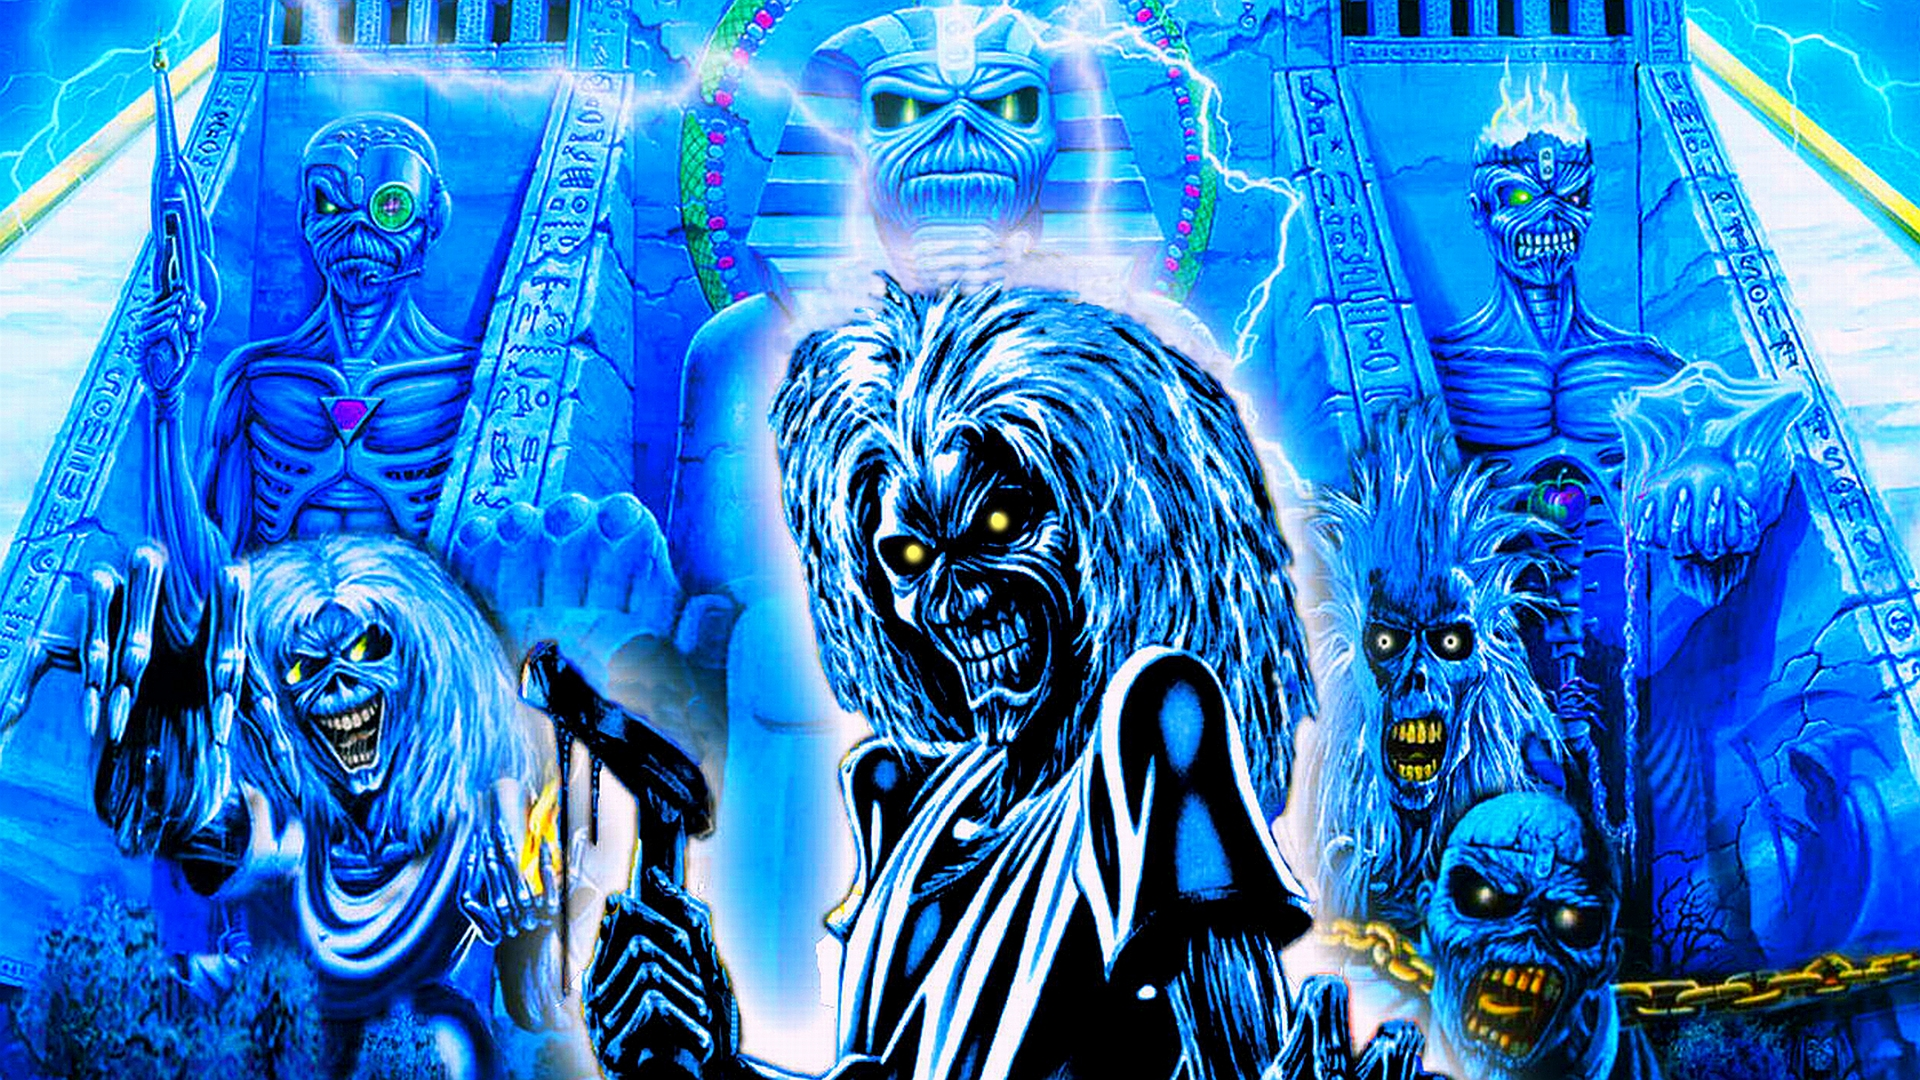 Iron Maiden Hd Wallpaper Background Image 1920x1080 Id